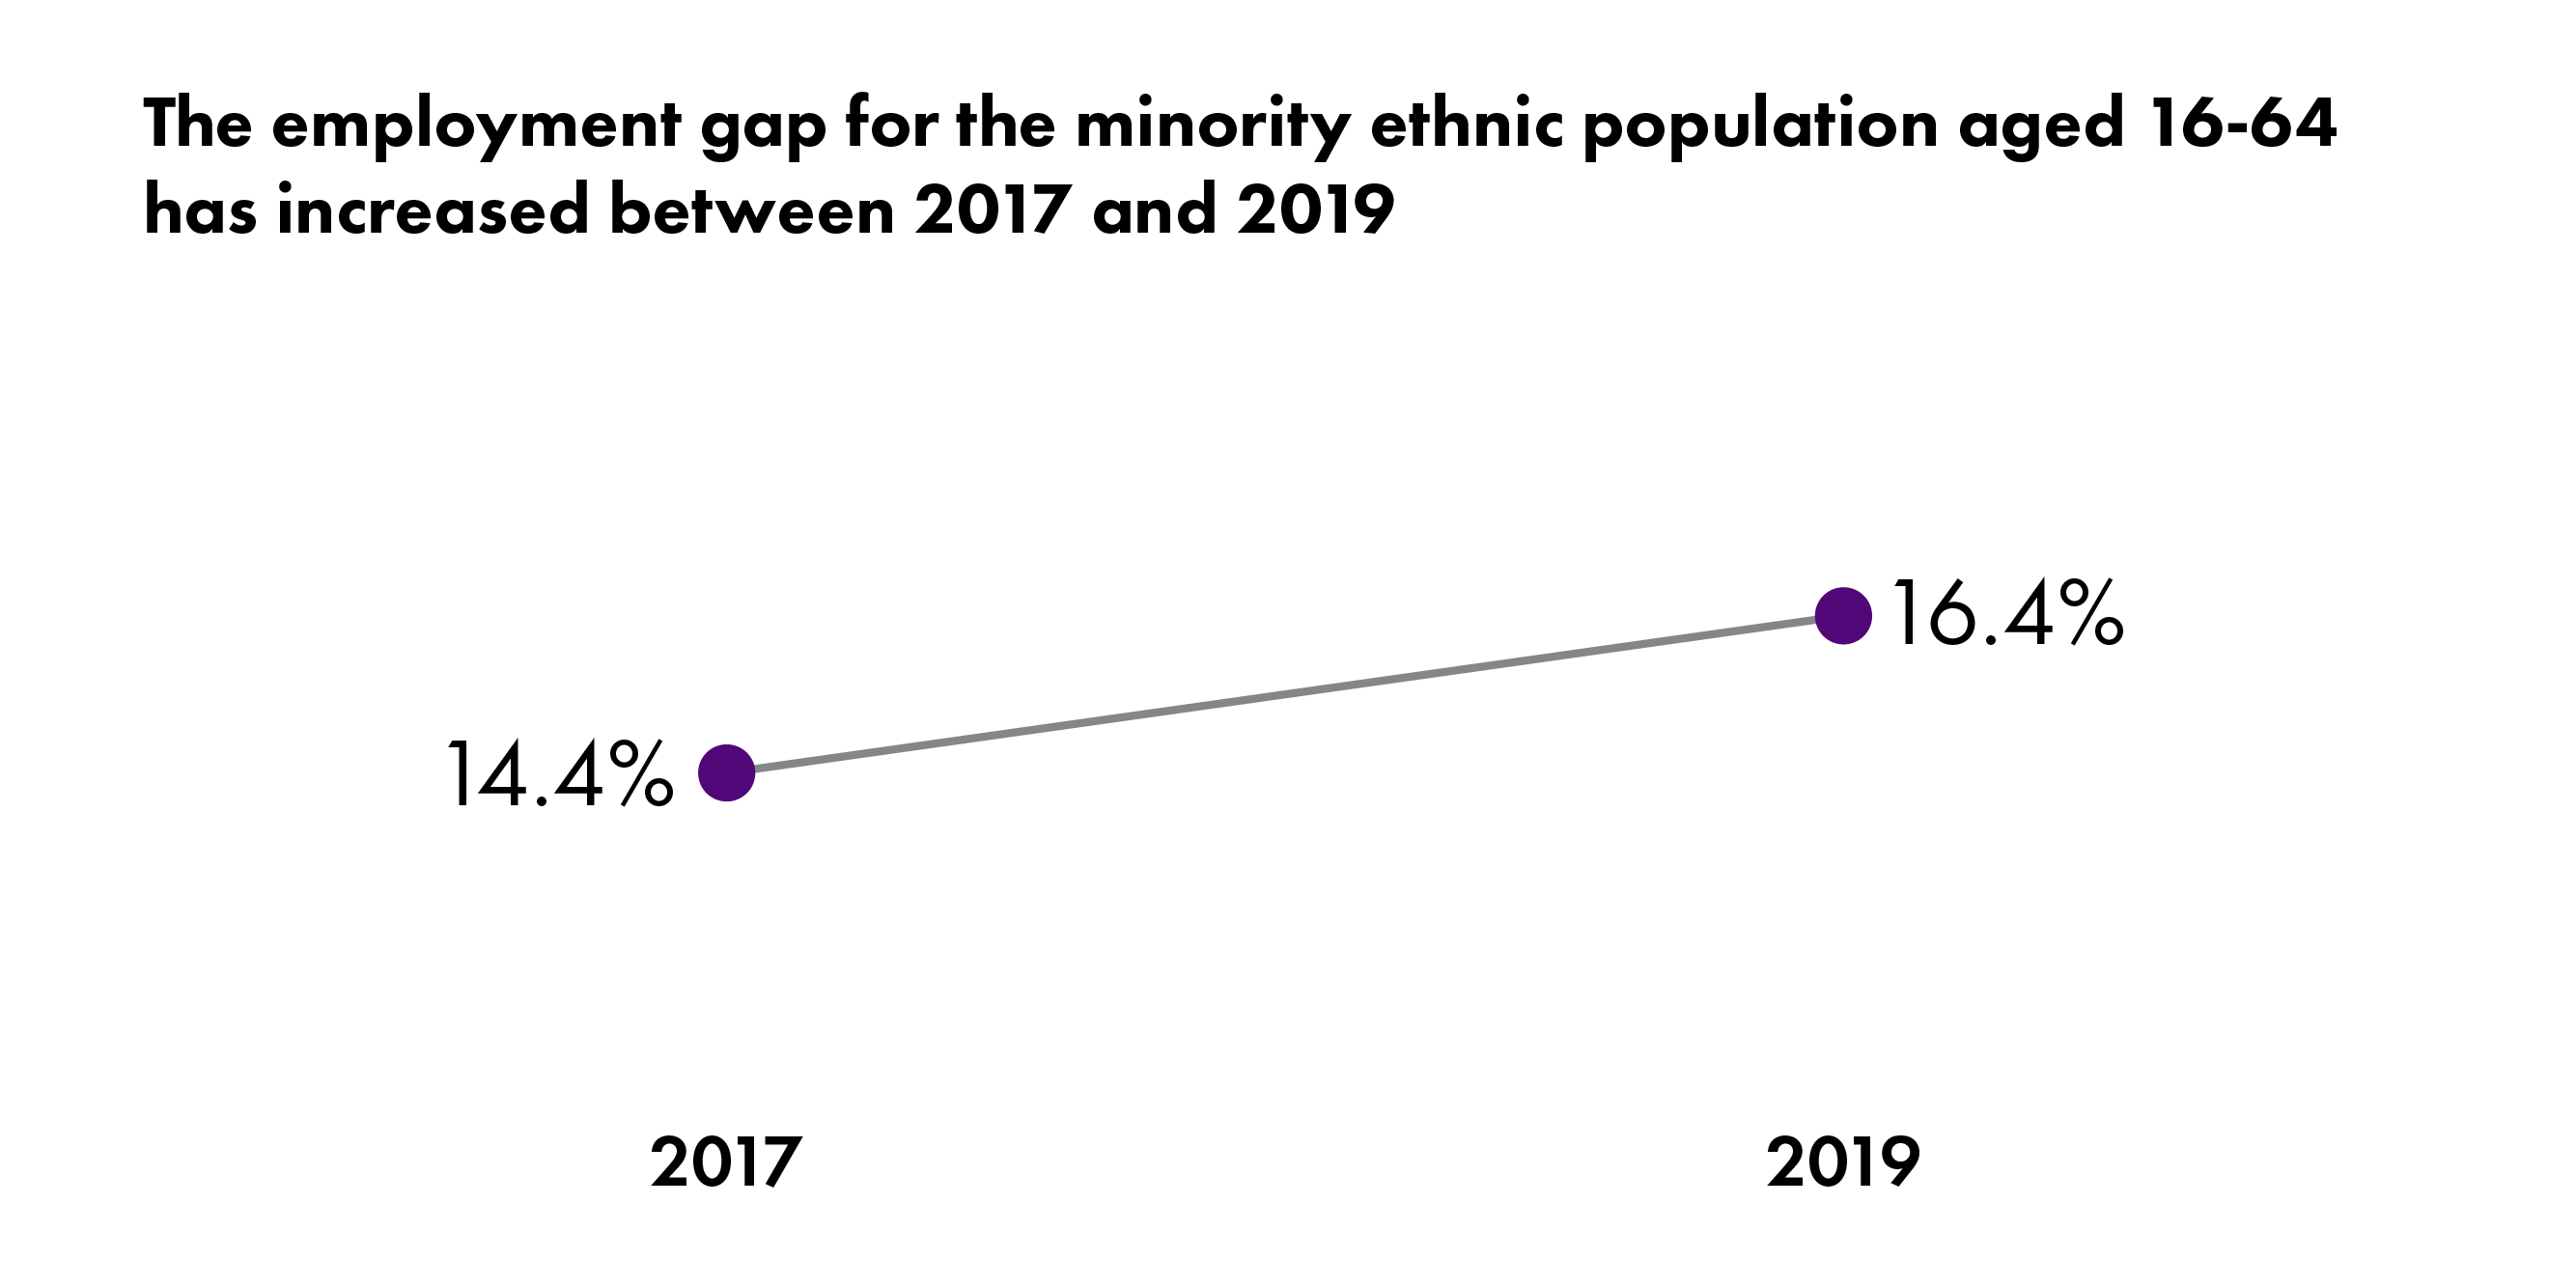 A chart showing that progress in tackling the ethnic employment gap has worsened - increasing from 14.4% to 16.4%